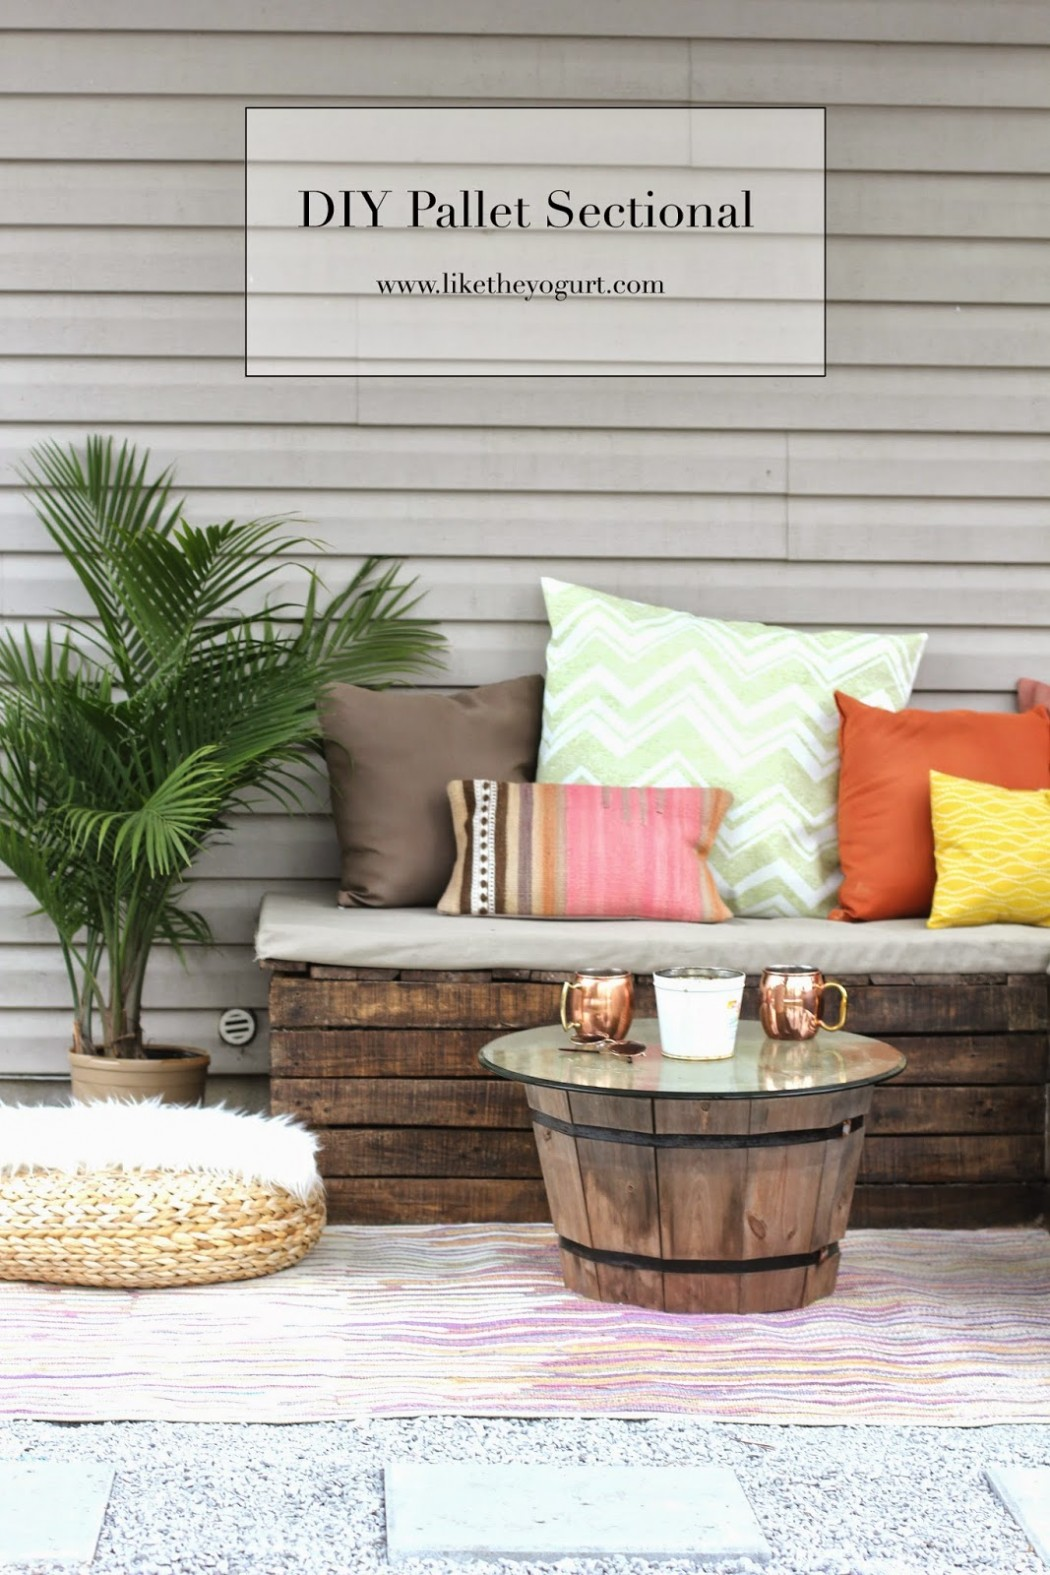 Pallet patio furniture instructions - Diy Pallet Sectional For Outdoor Furniture